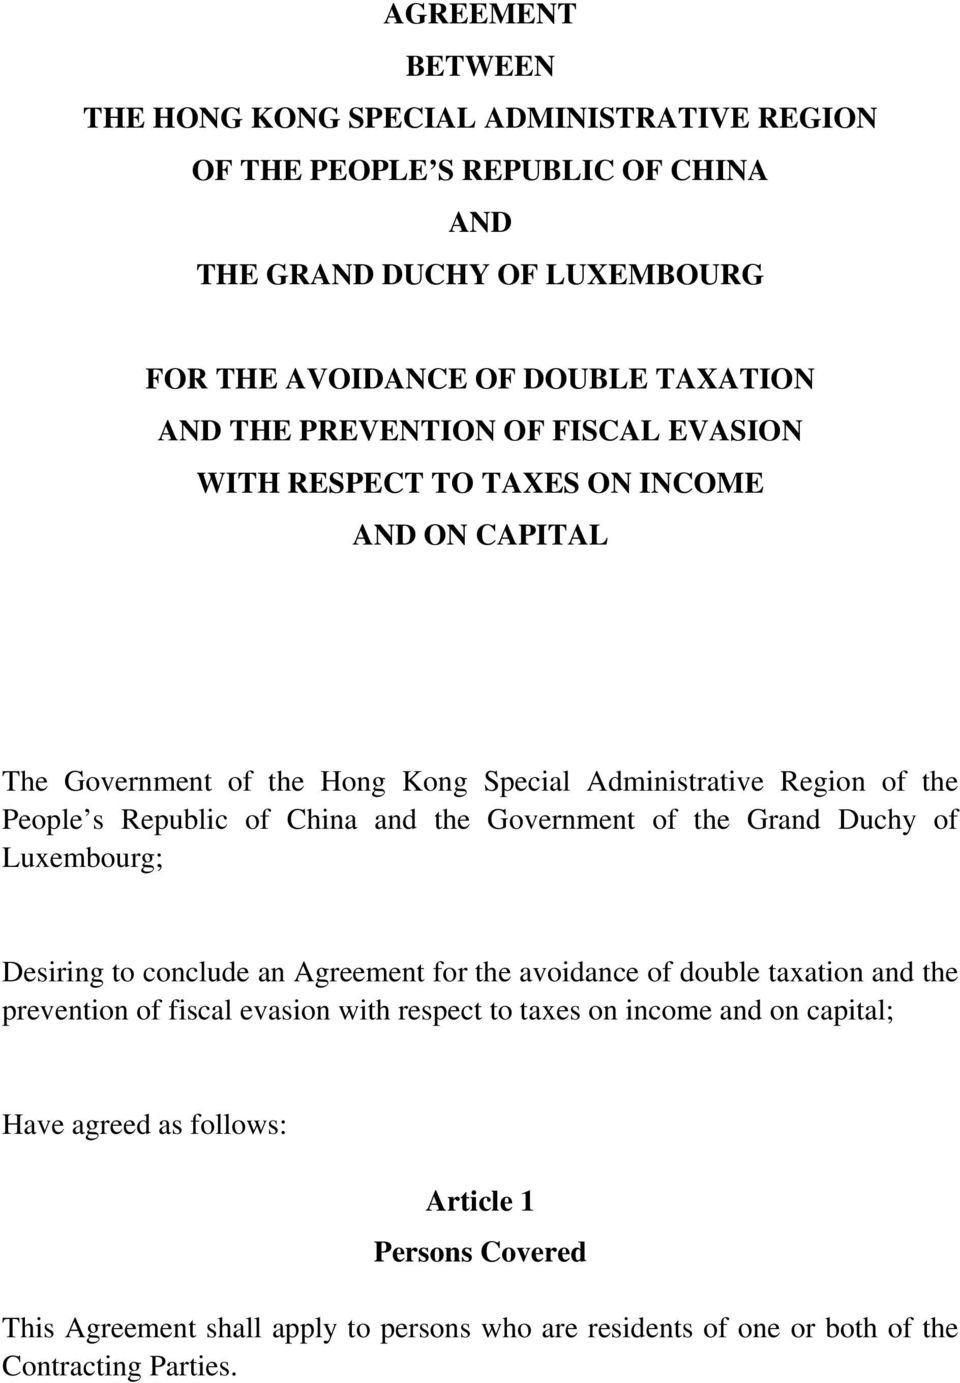 the Government of the Grand Duchy of Luxembourg; Desiring to conclude an Agreement for the avoidance of double taxation and the prevention of fiscal evasion with respect to